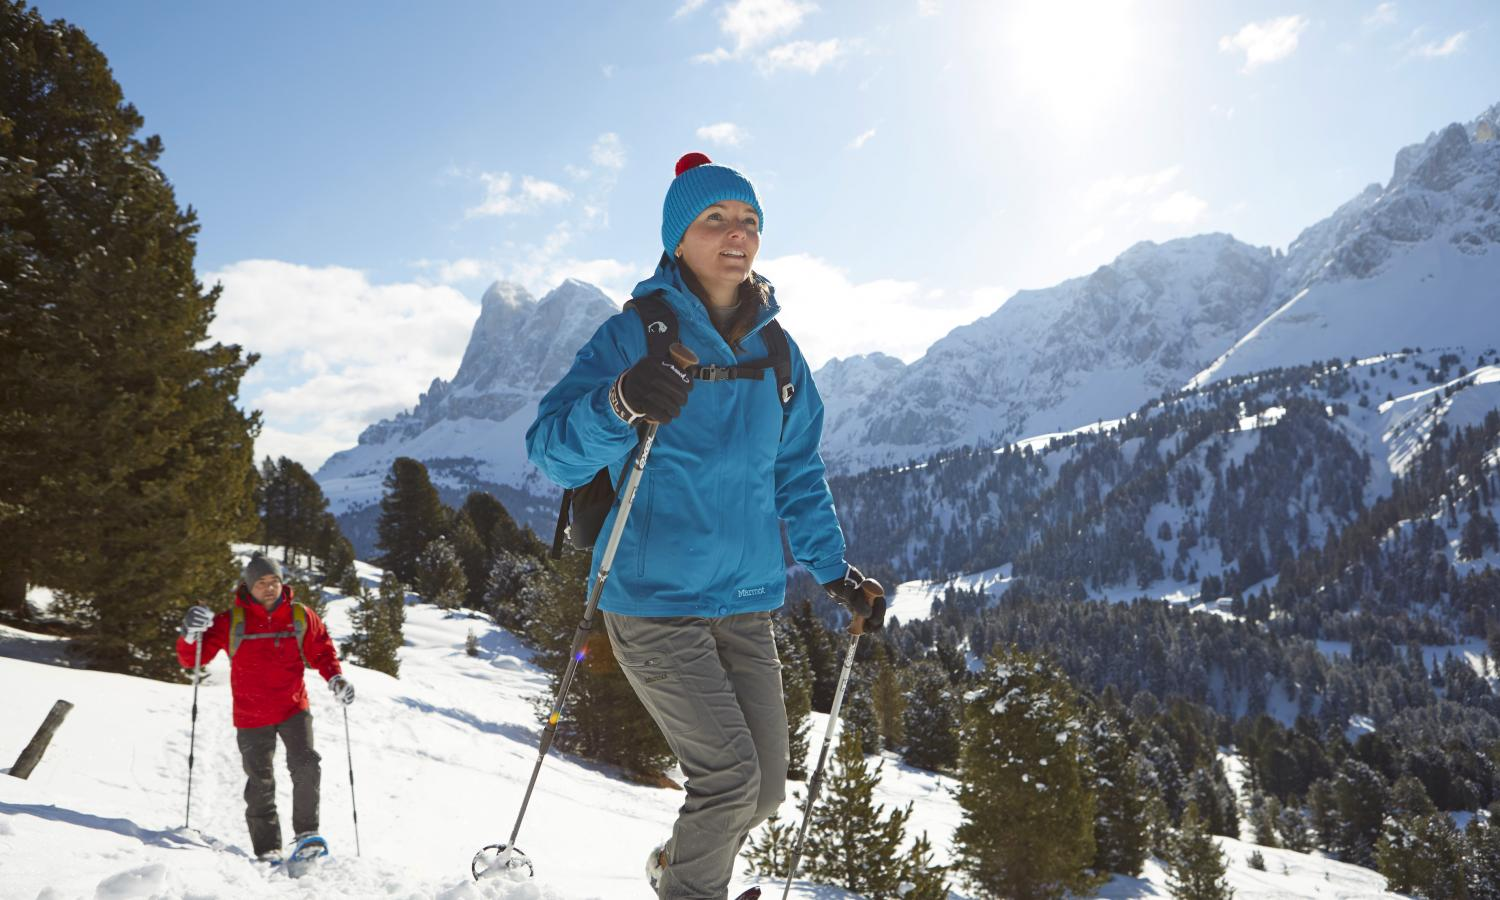 Snow shoe hiking in the Dolomites - Peitlerkofel